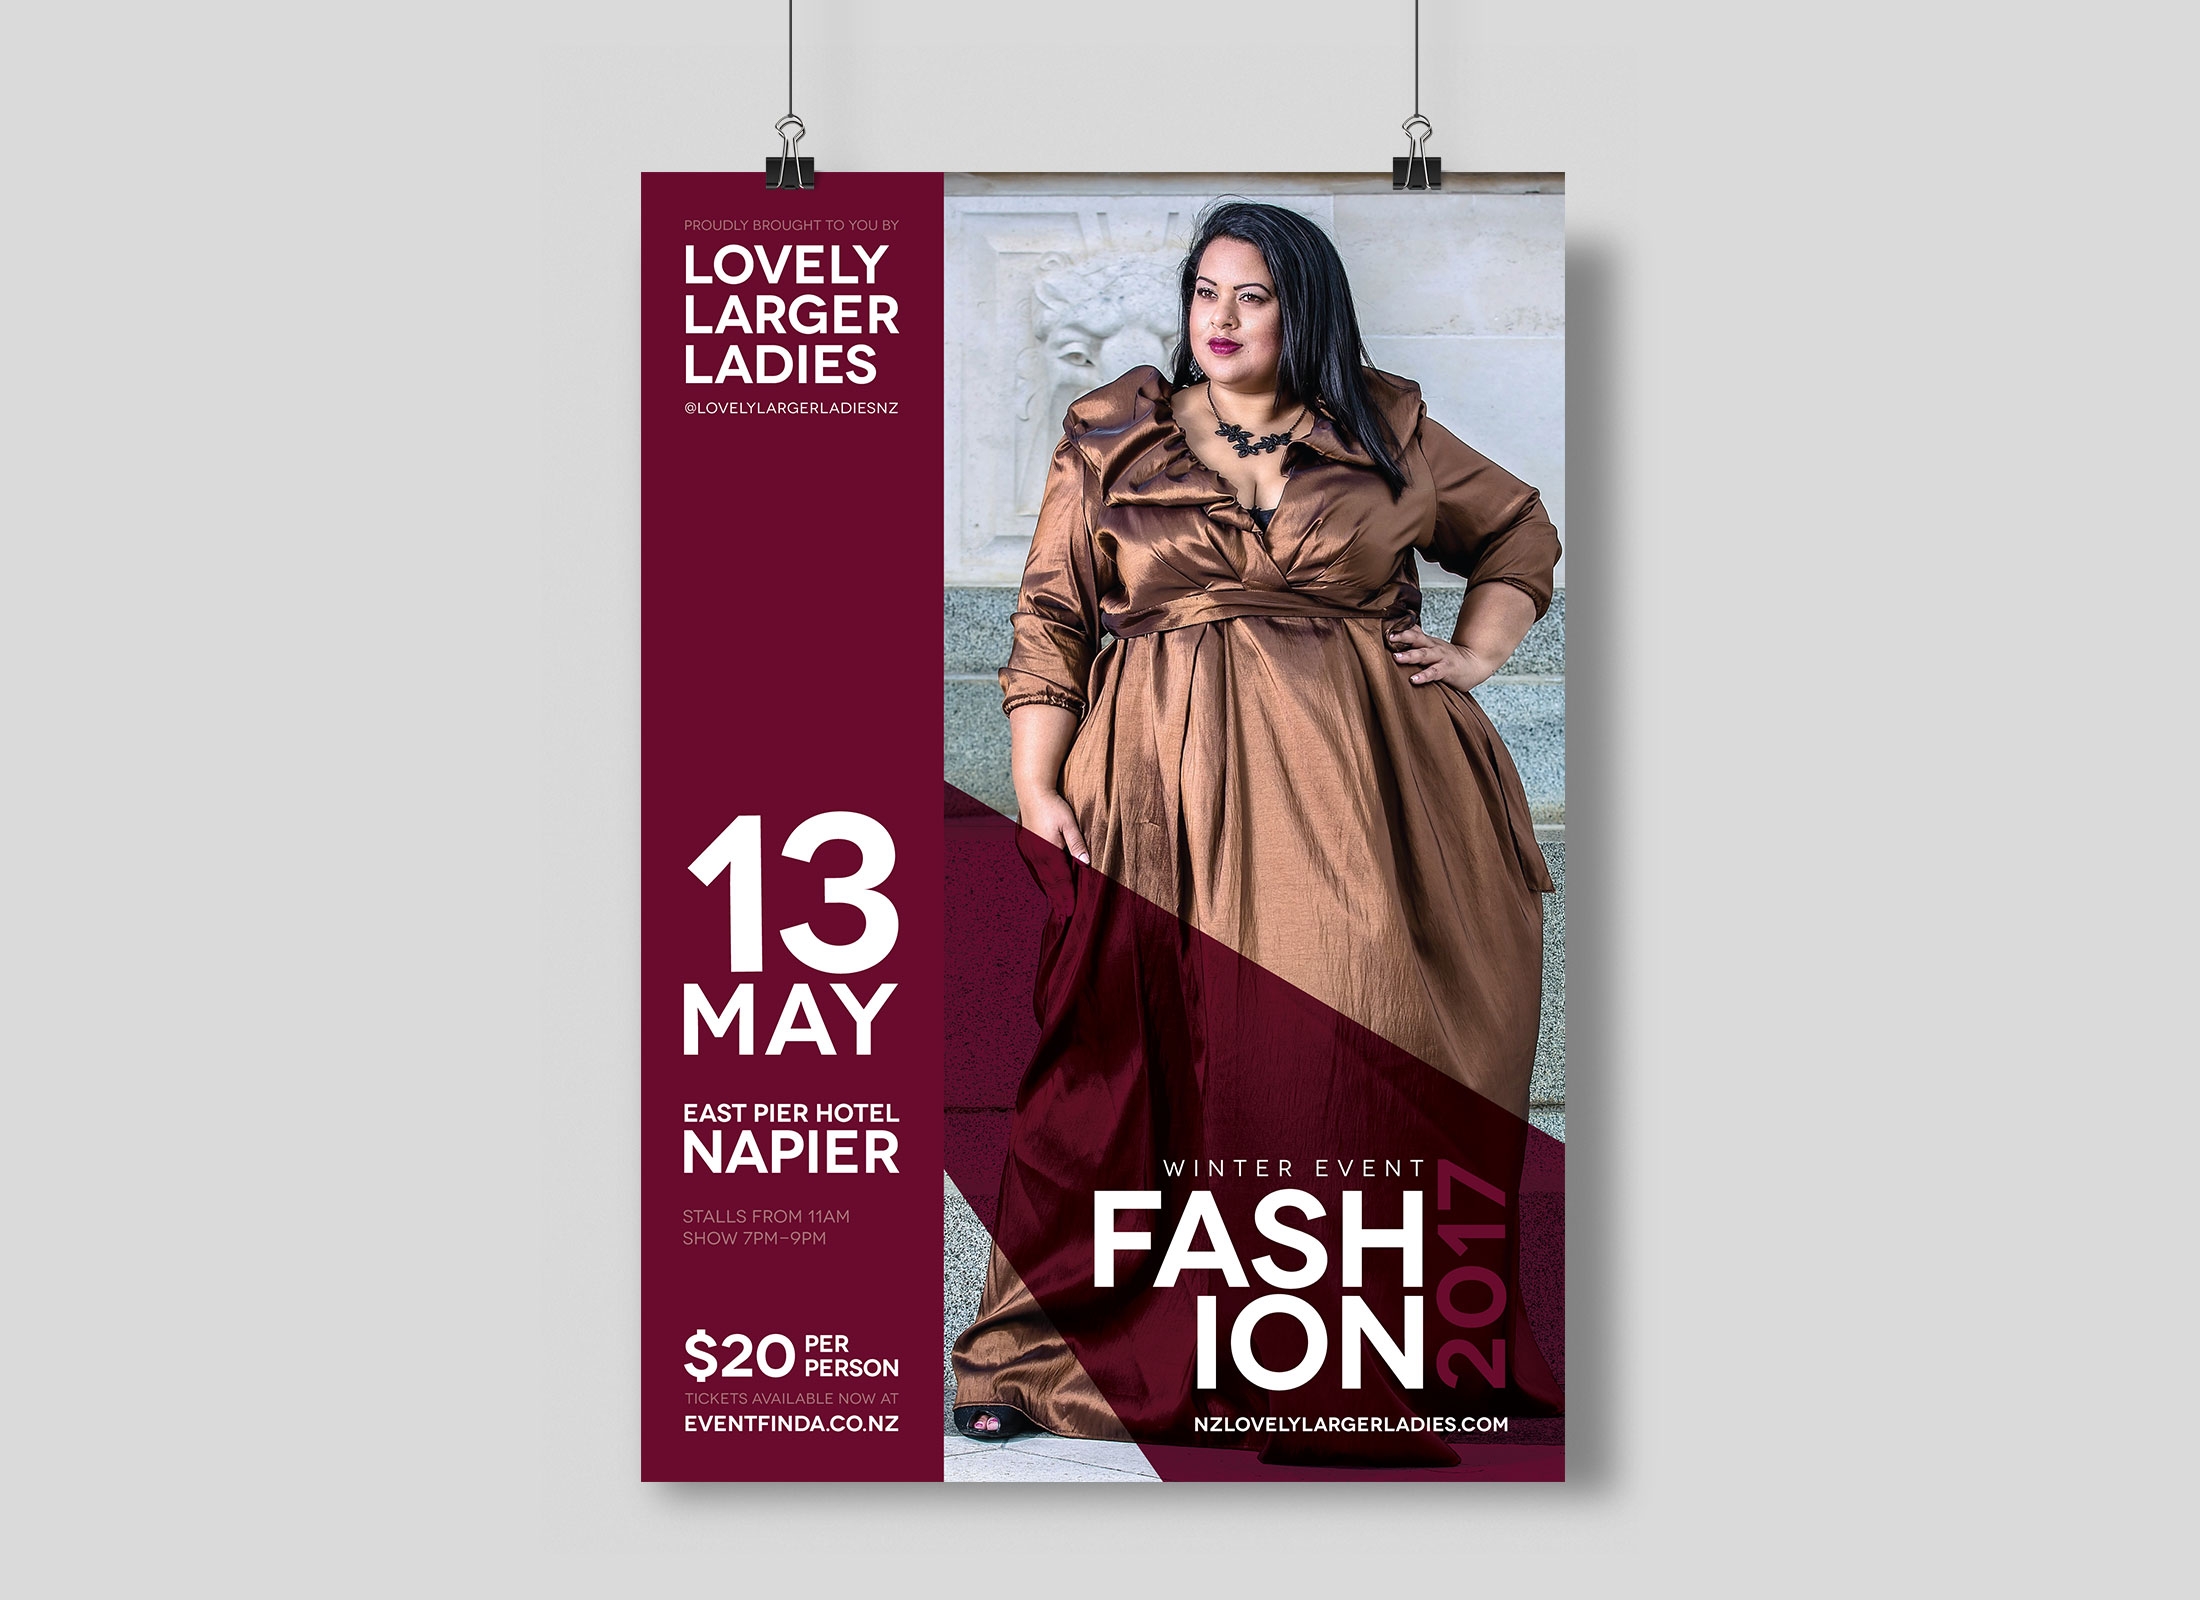 Poster design freelance - Poster Design For Lovely Larger Ladies Nz